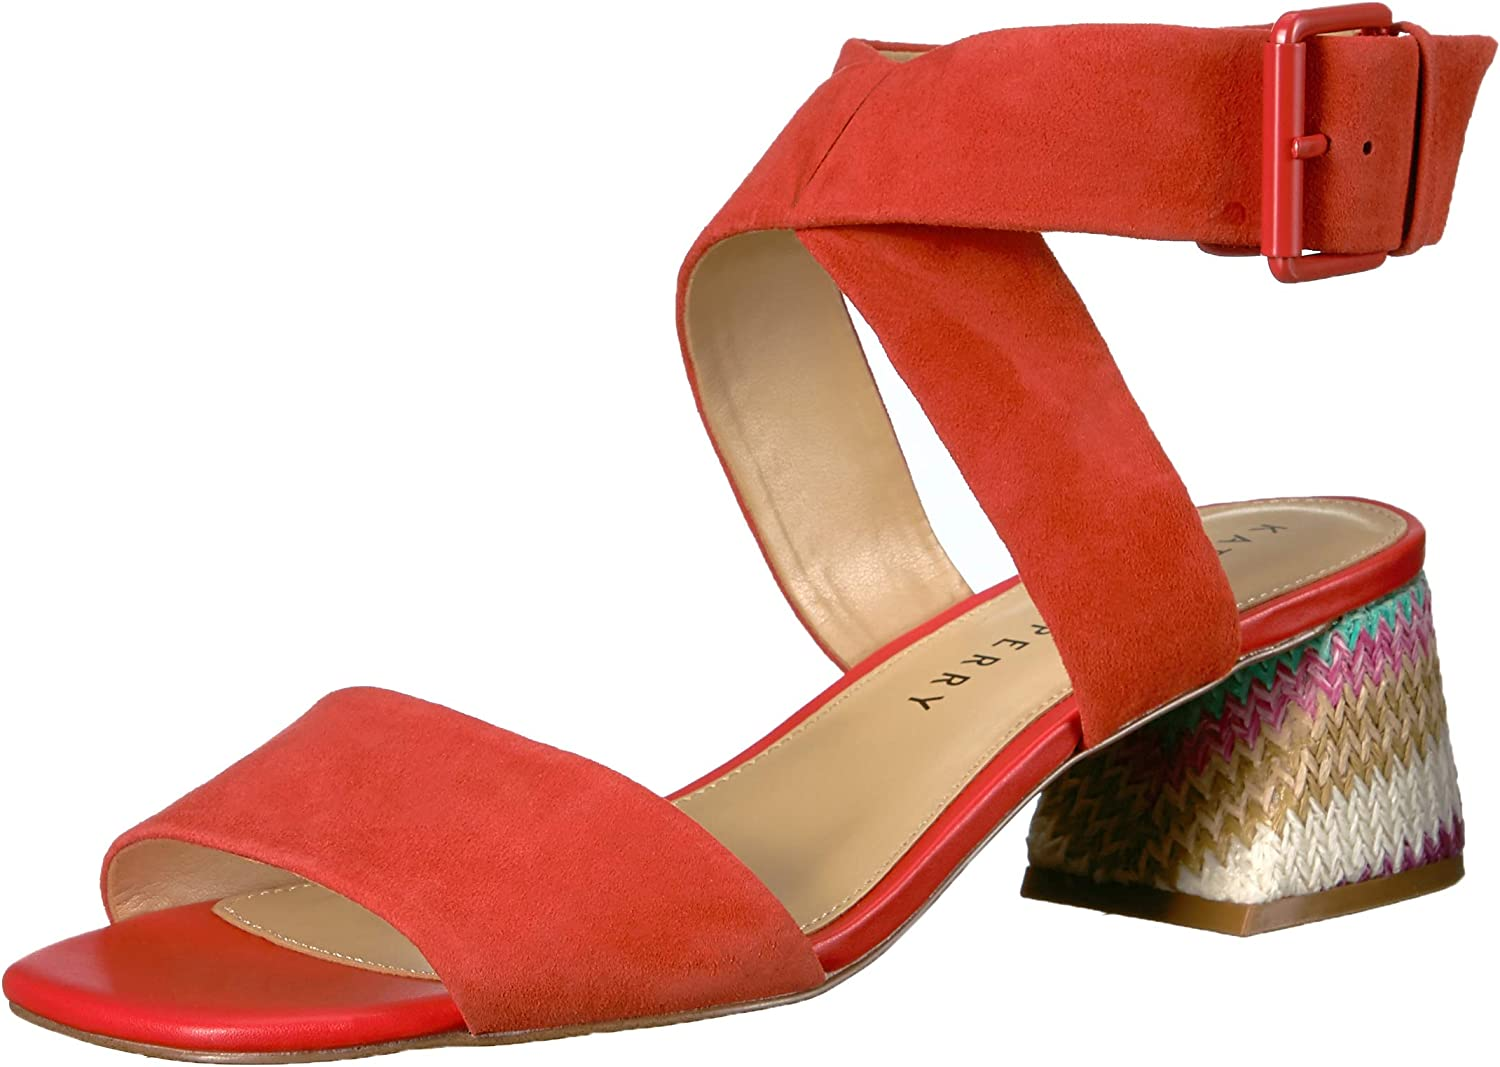 Katy Perry Women's The Max 79% OFF Sandal Gifts Albee Heeled